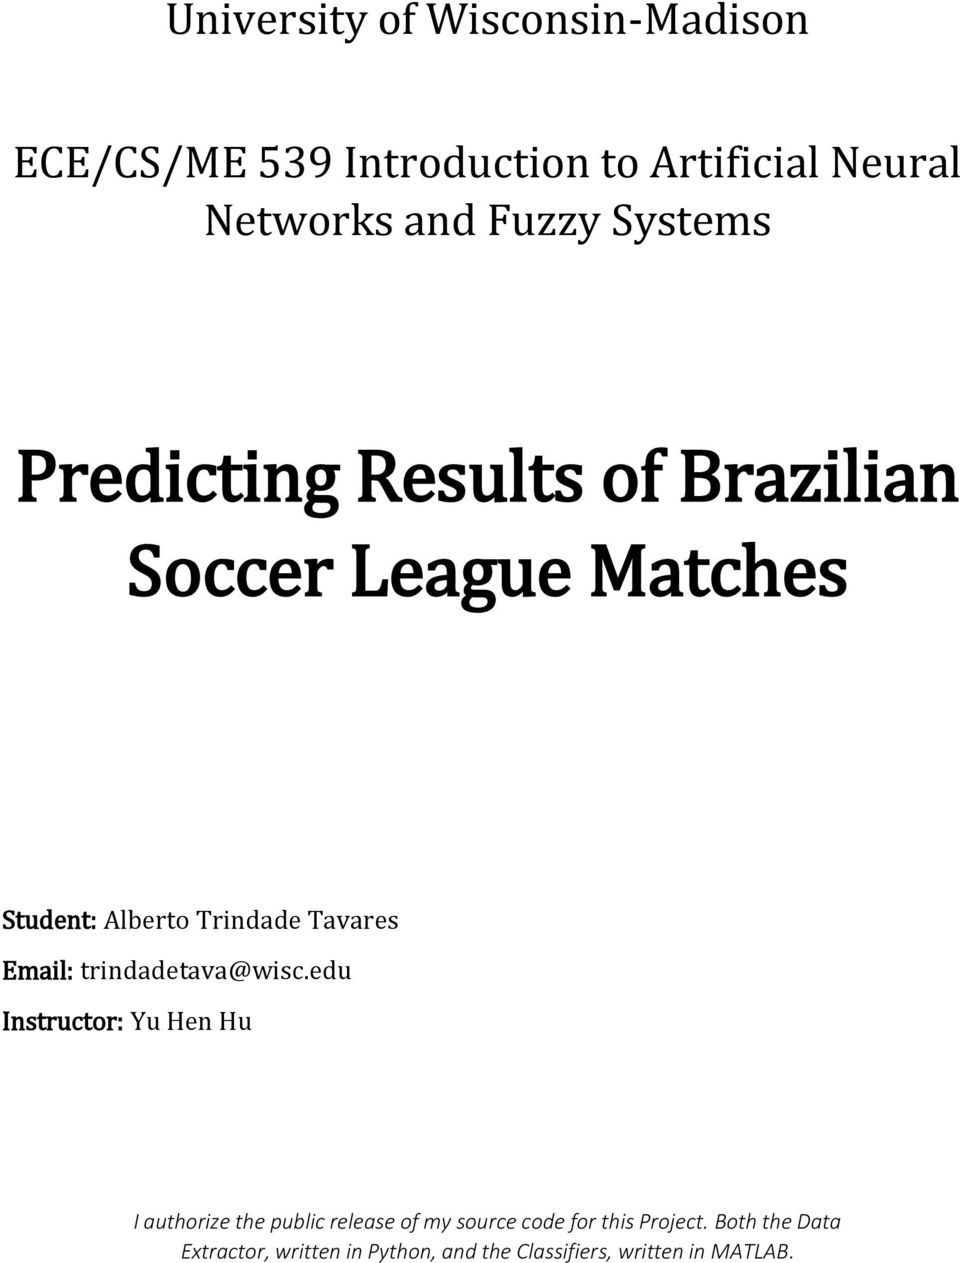 Predicting Results of Brazilian Soccer League Matches - PDF